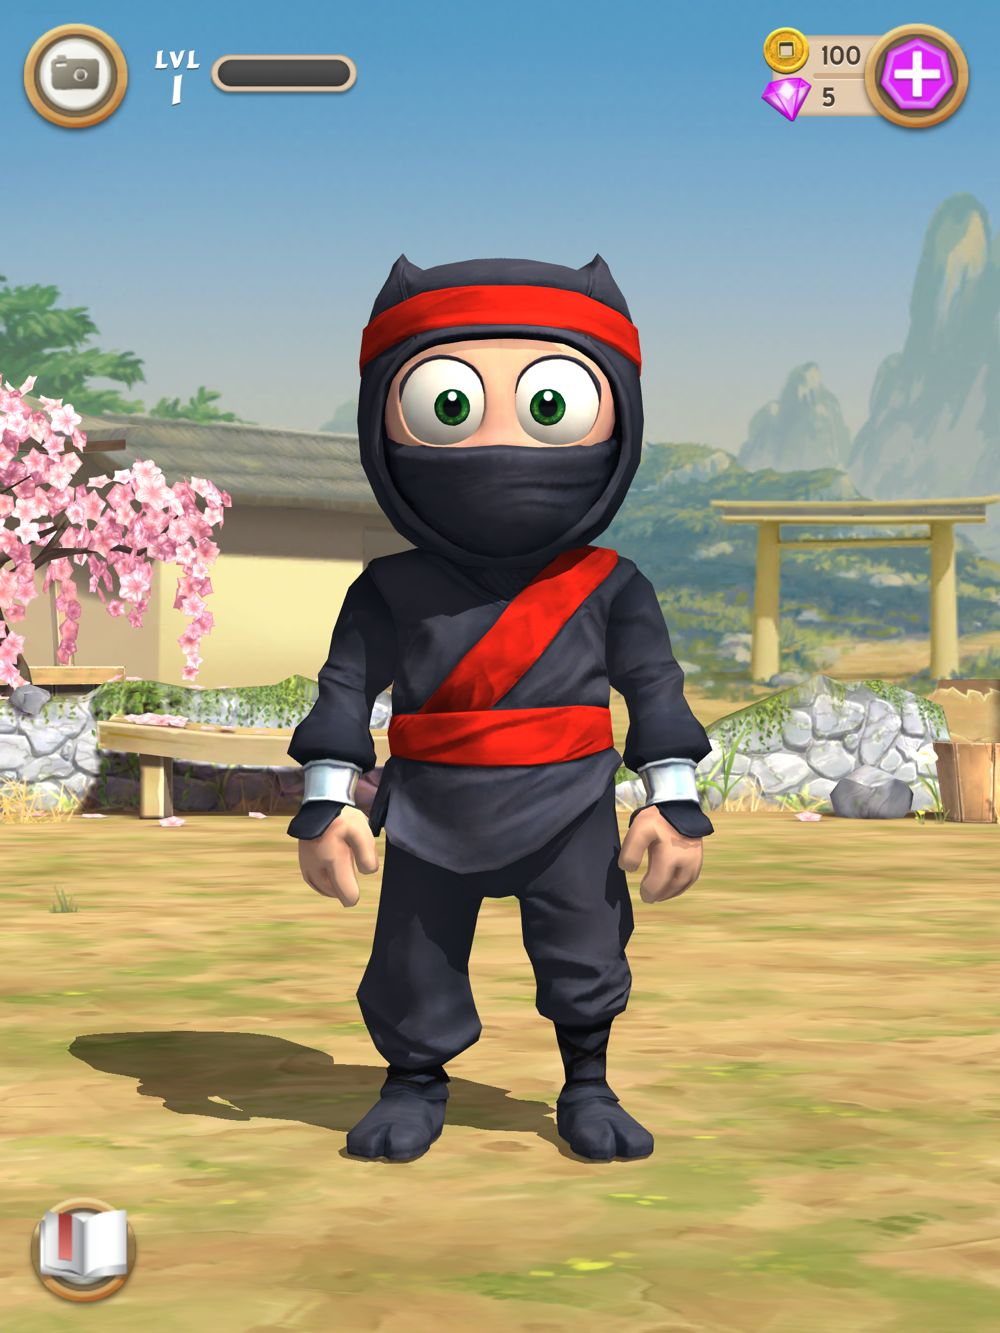 Descargar Clumsy Ninja para iPhone